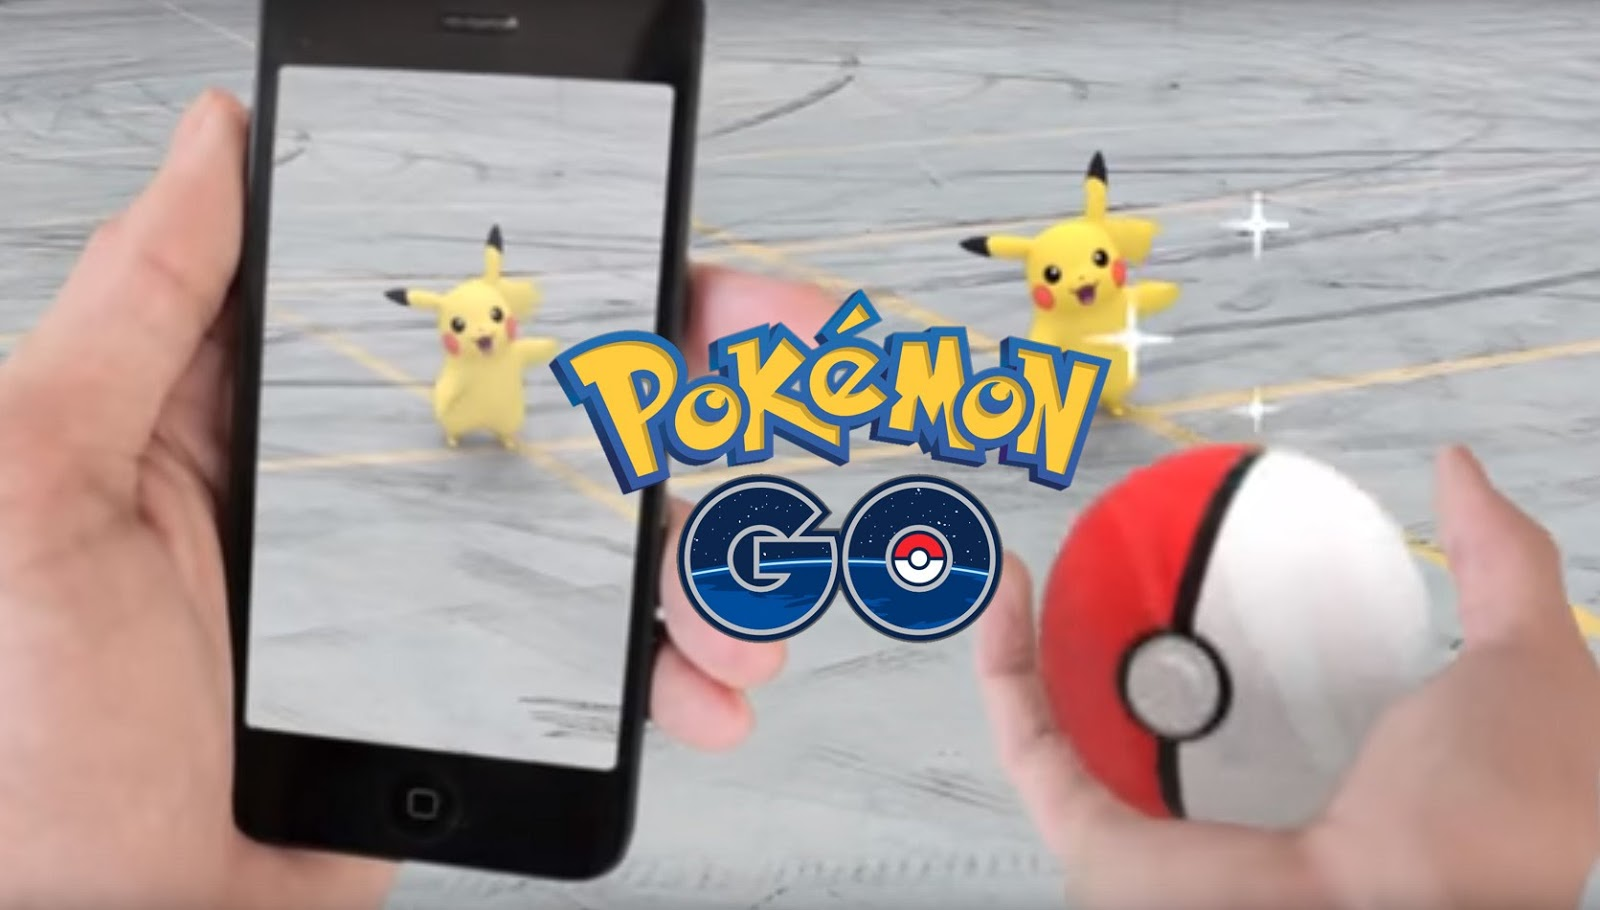 Come stoppare tempo e avere Pokemon infiniti in Pokemon GO